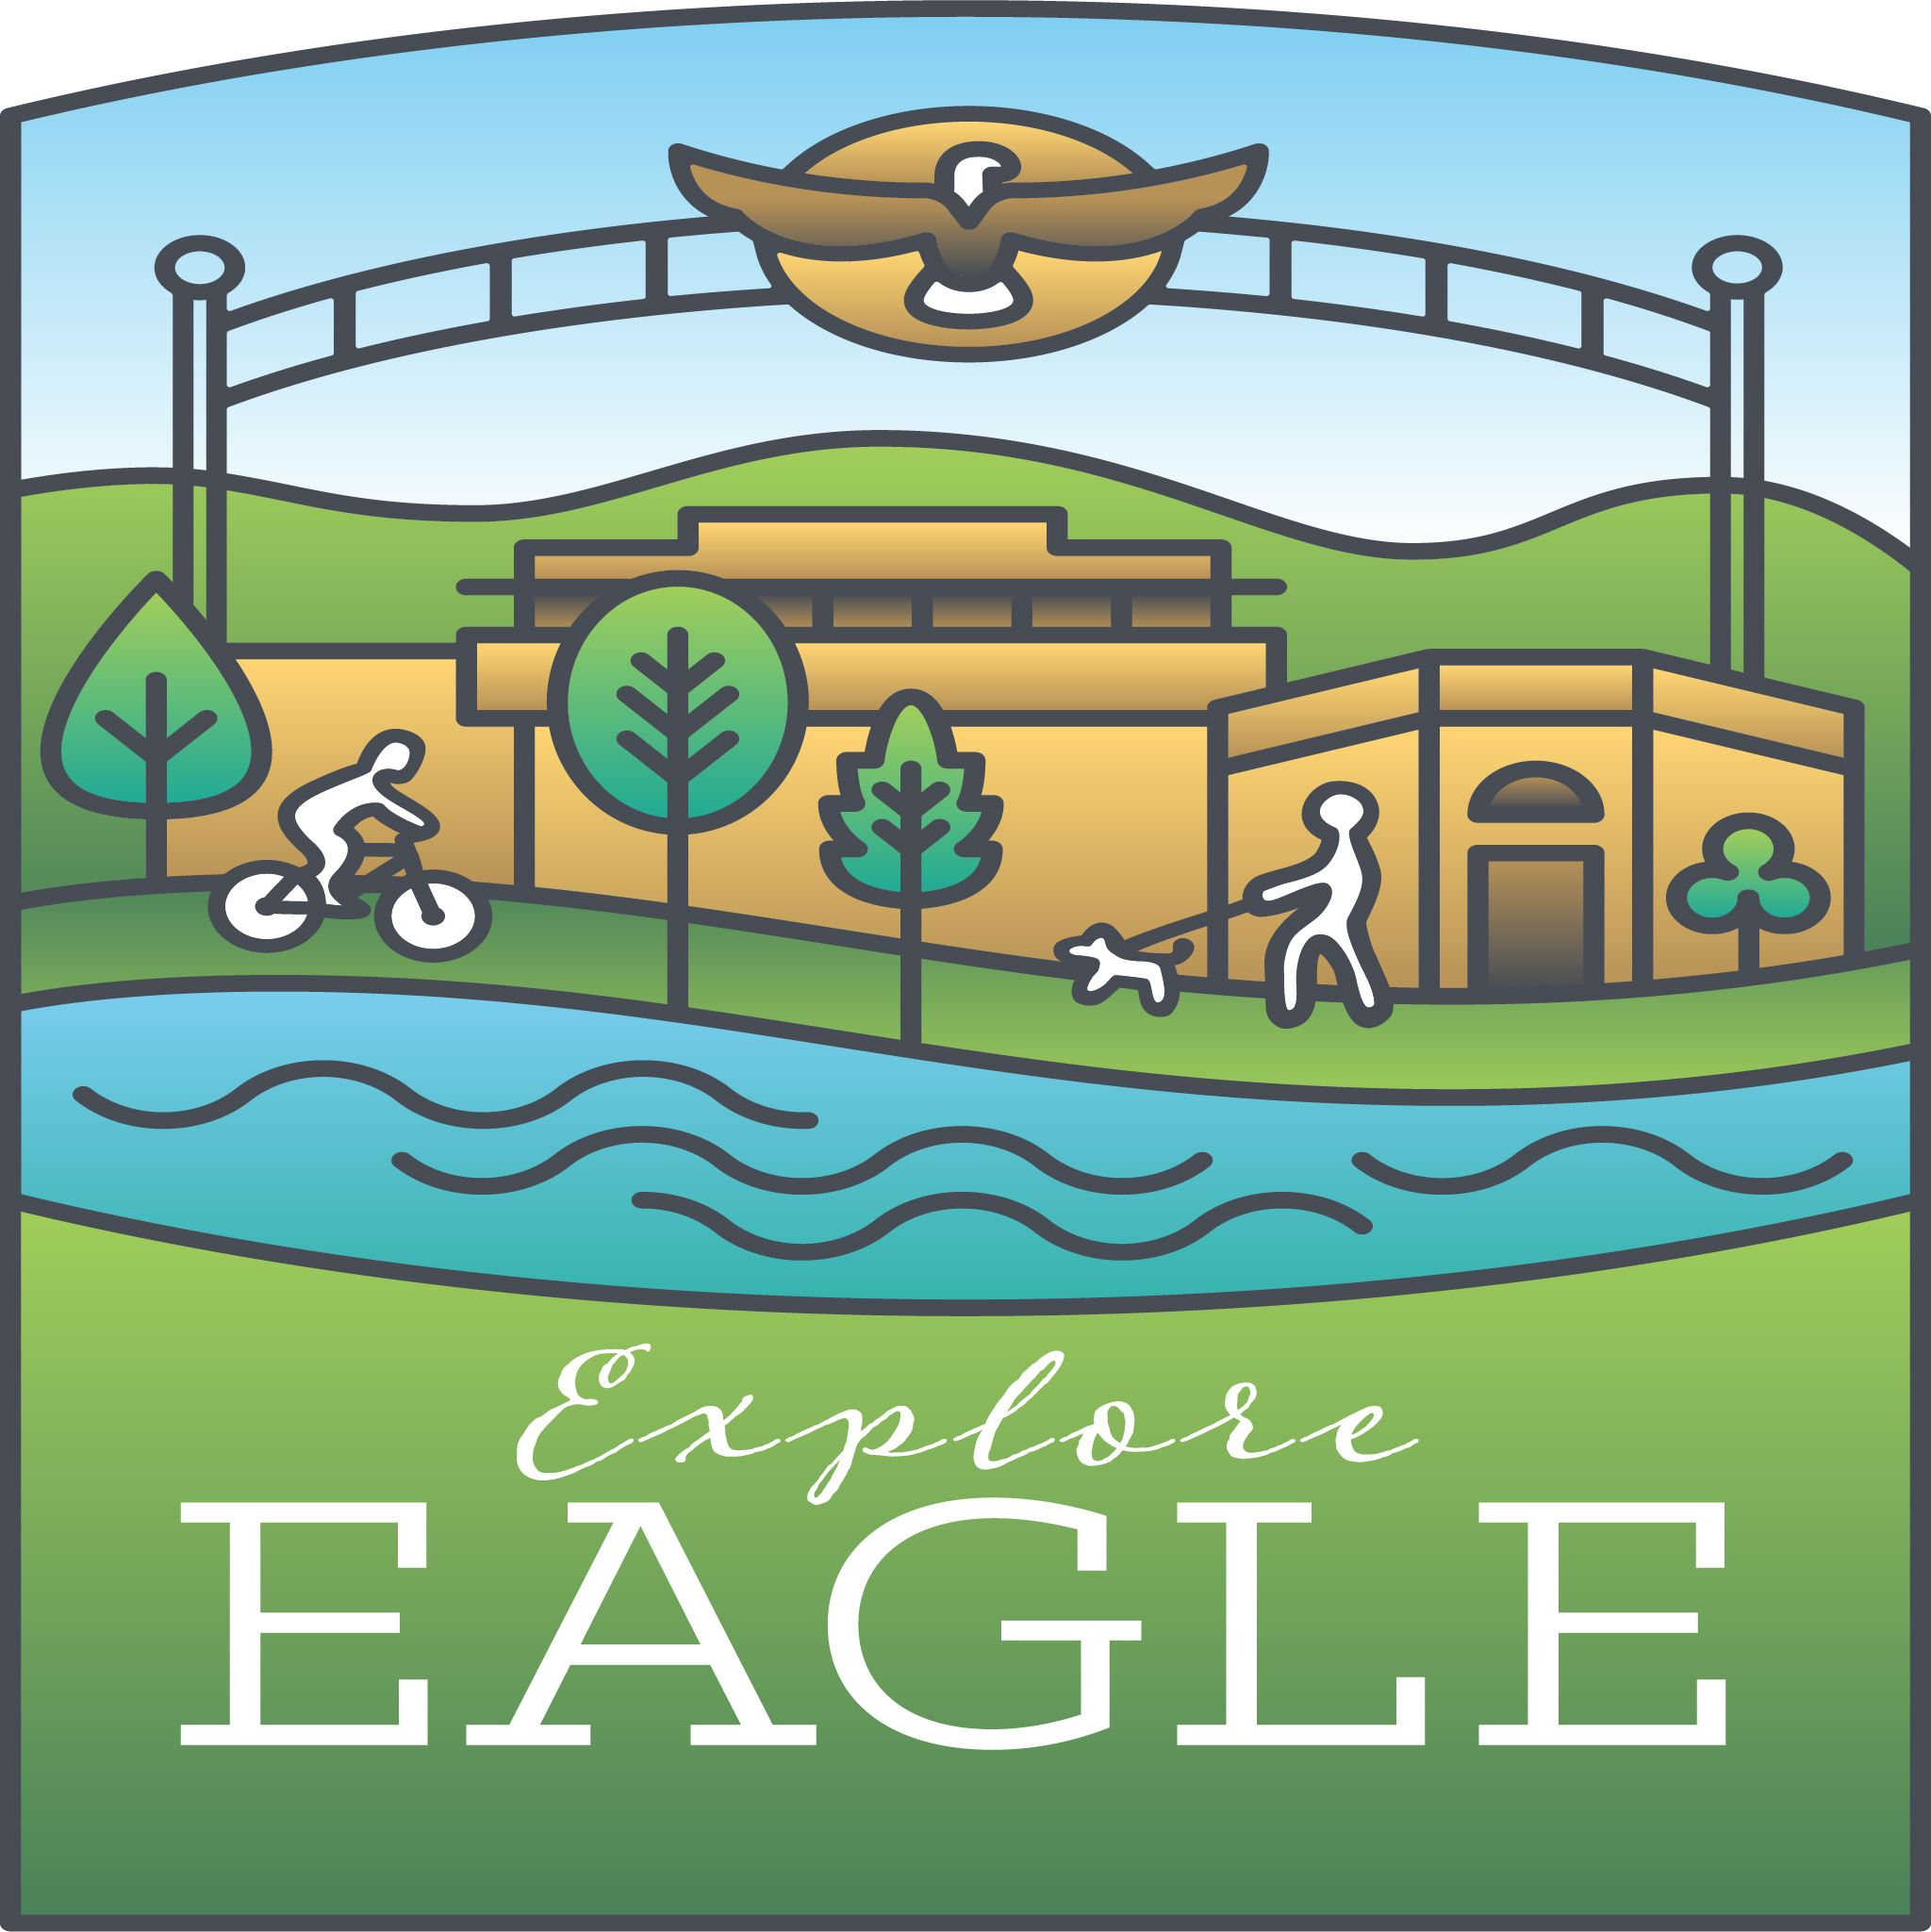 Explore Eagle Idaho App Logo